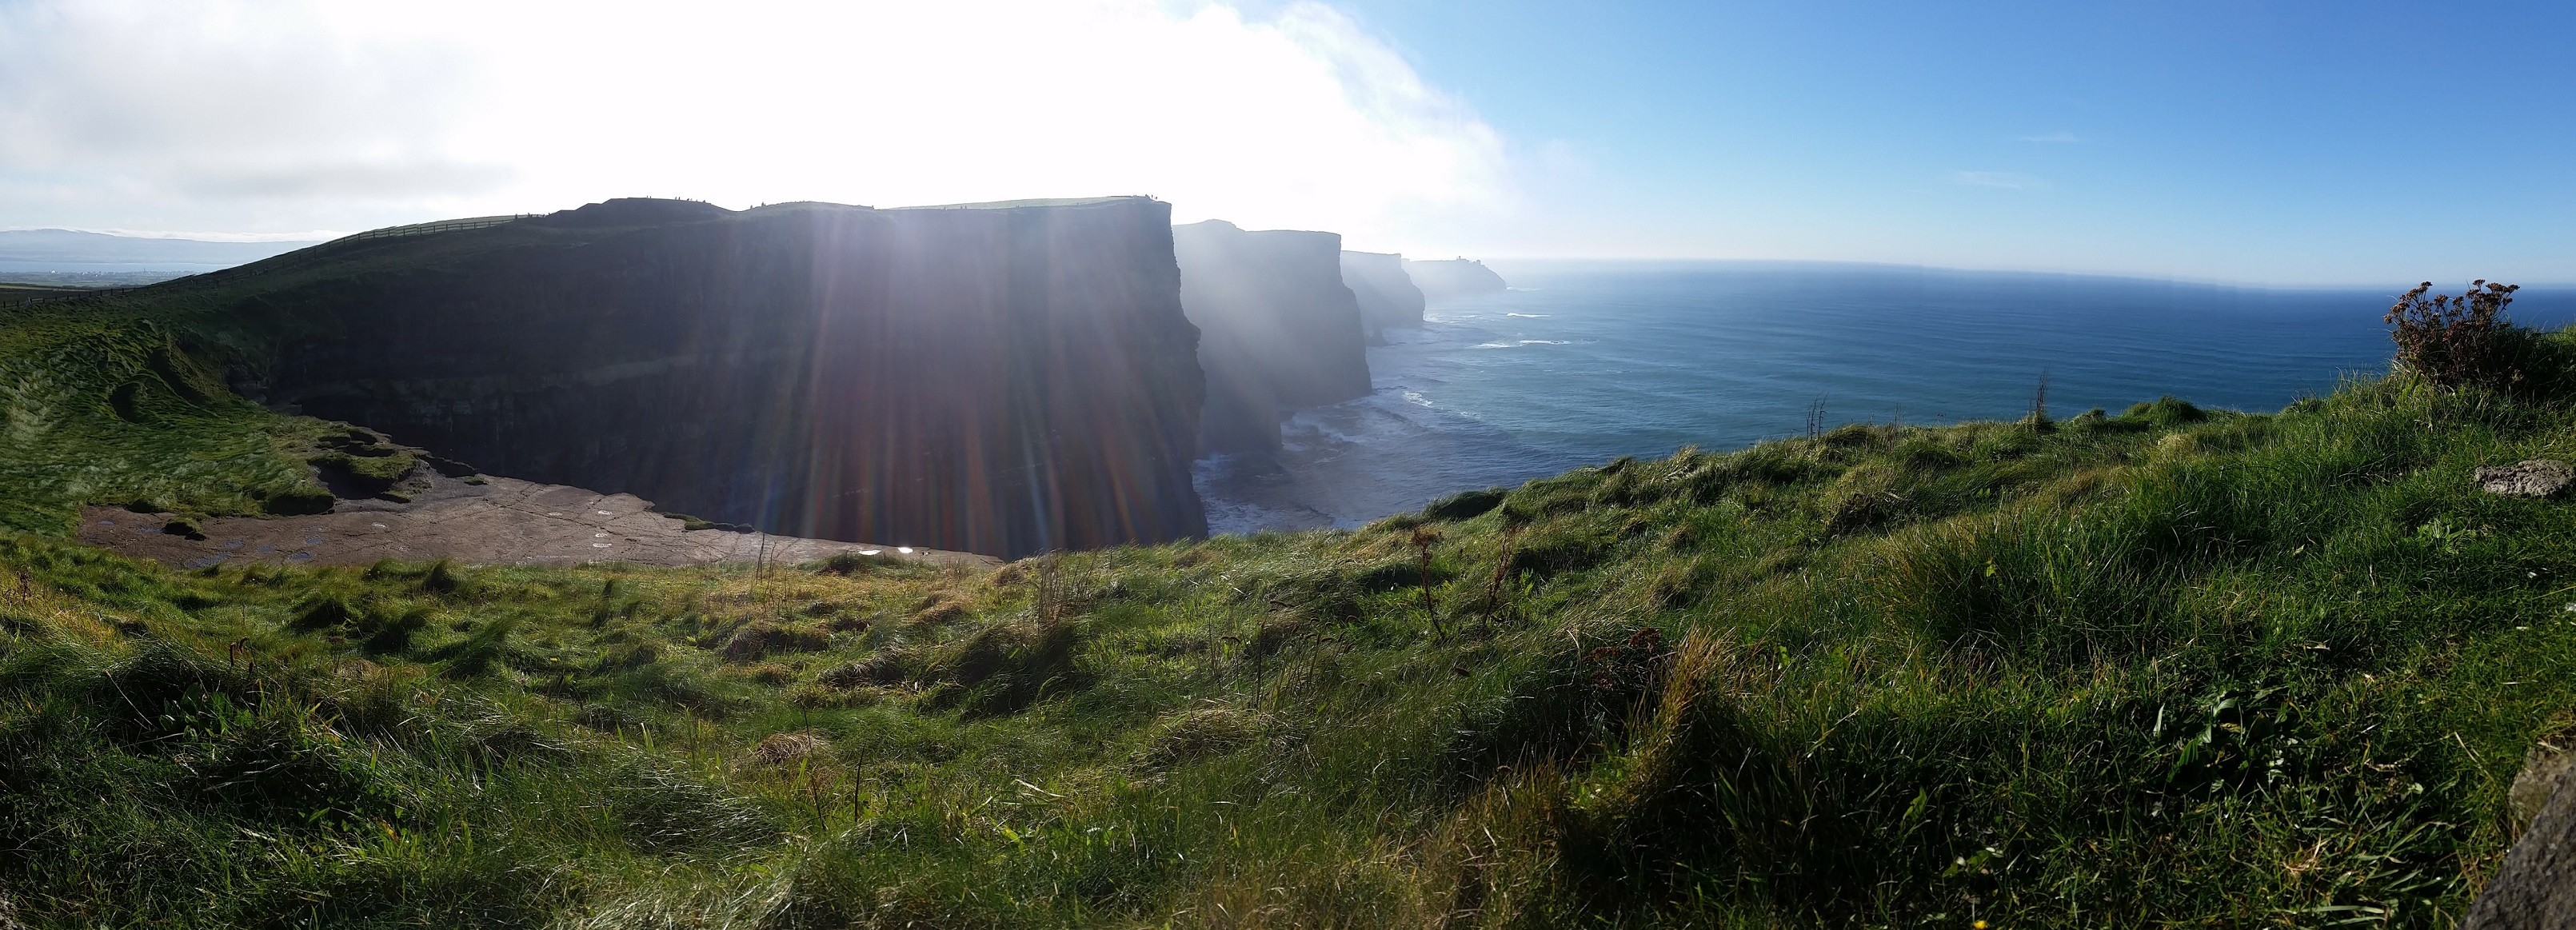 Reduced Cliffs of Moher.jpg